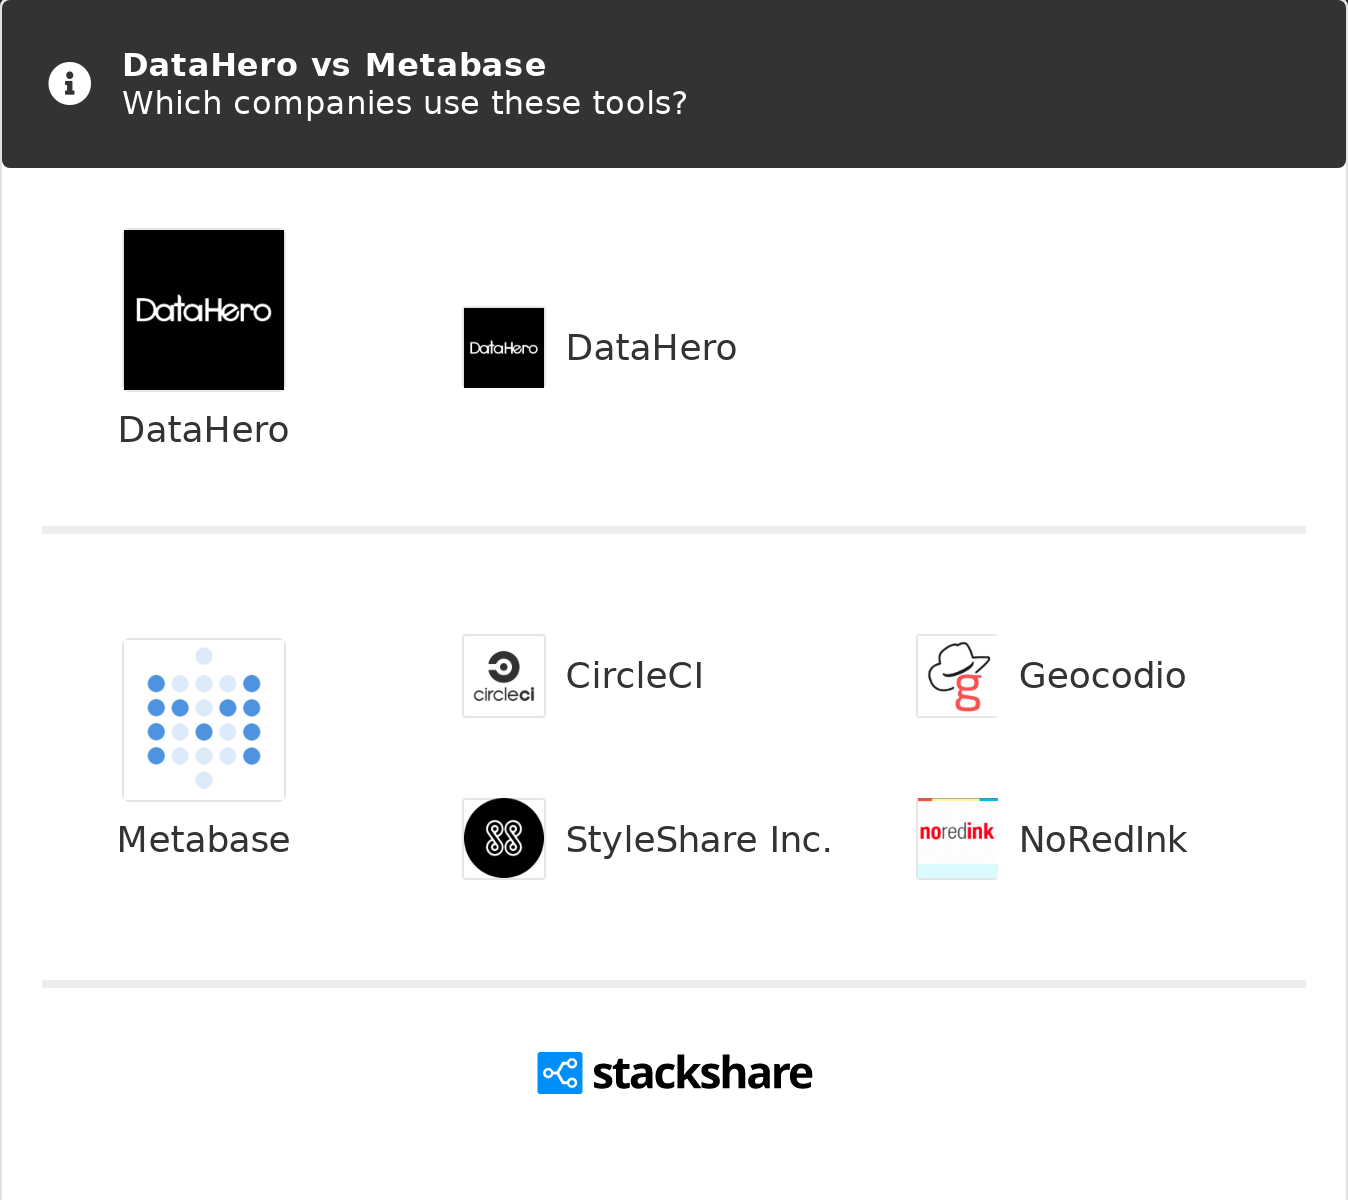 DataHero vs Metabase | What are the differences?